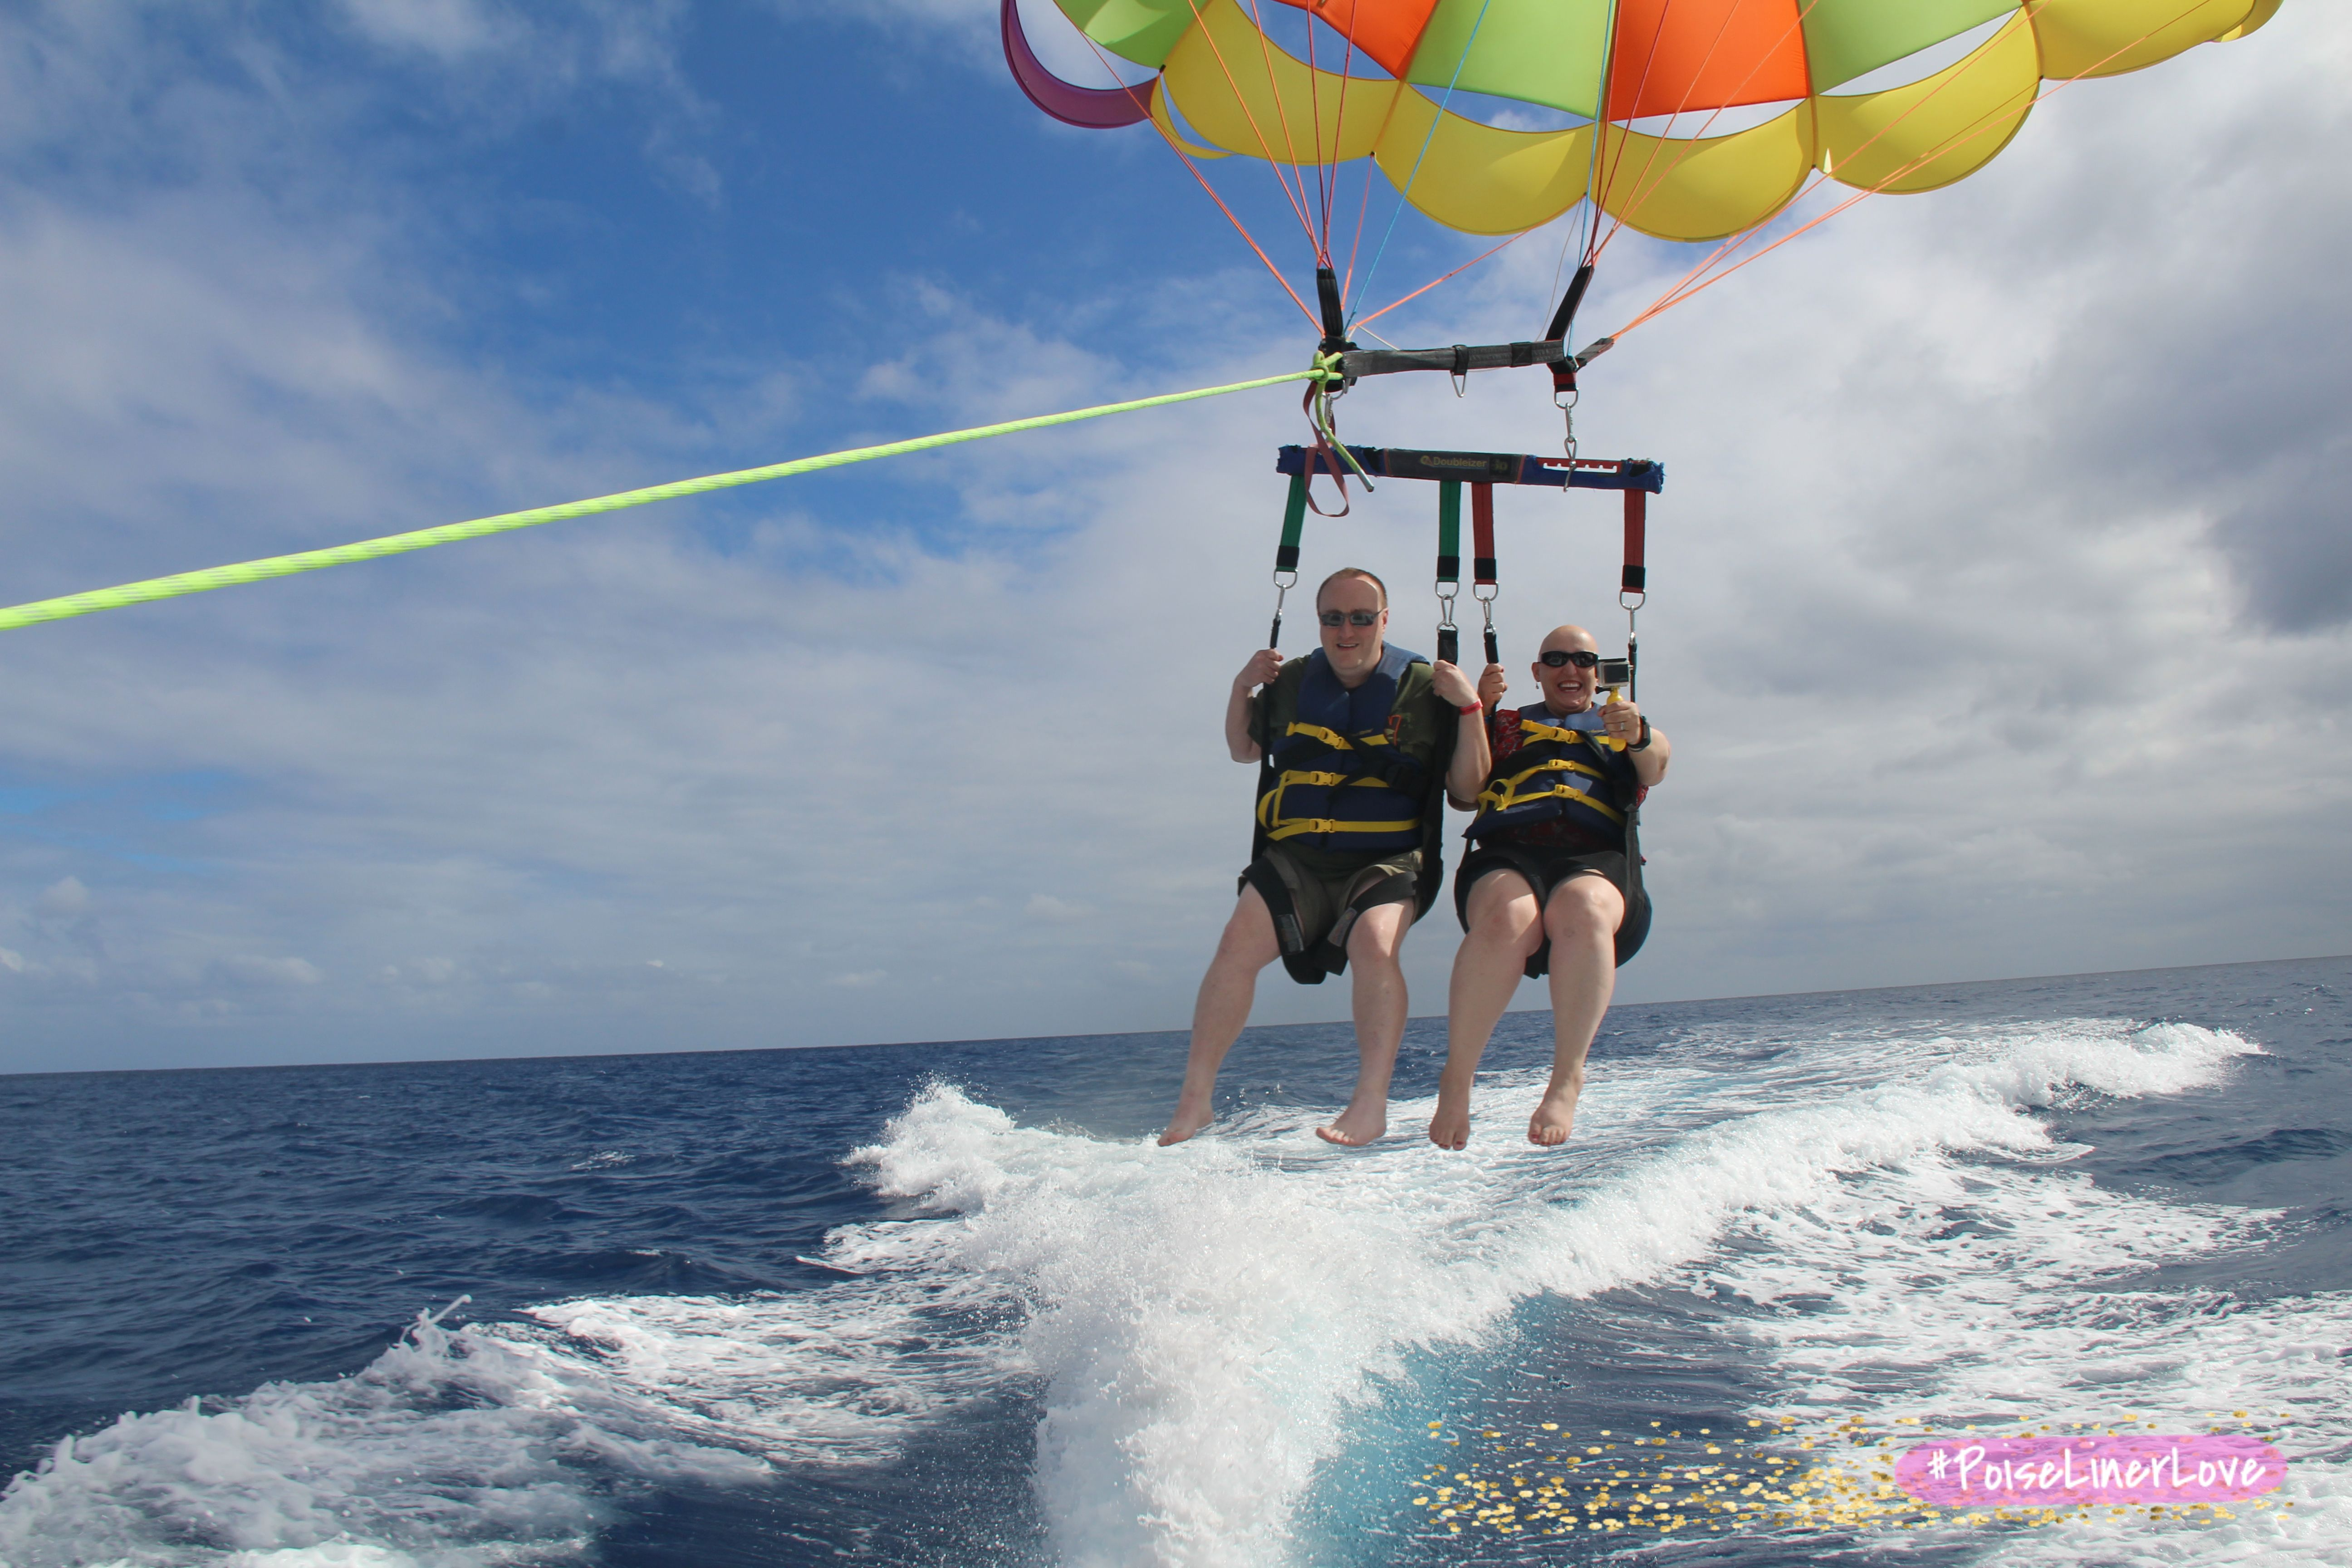 The sea breeze is the only moisture you want to feel when #parasailing over the ocean! #poiselinerlove #ad